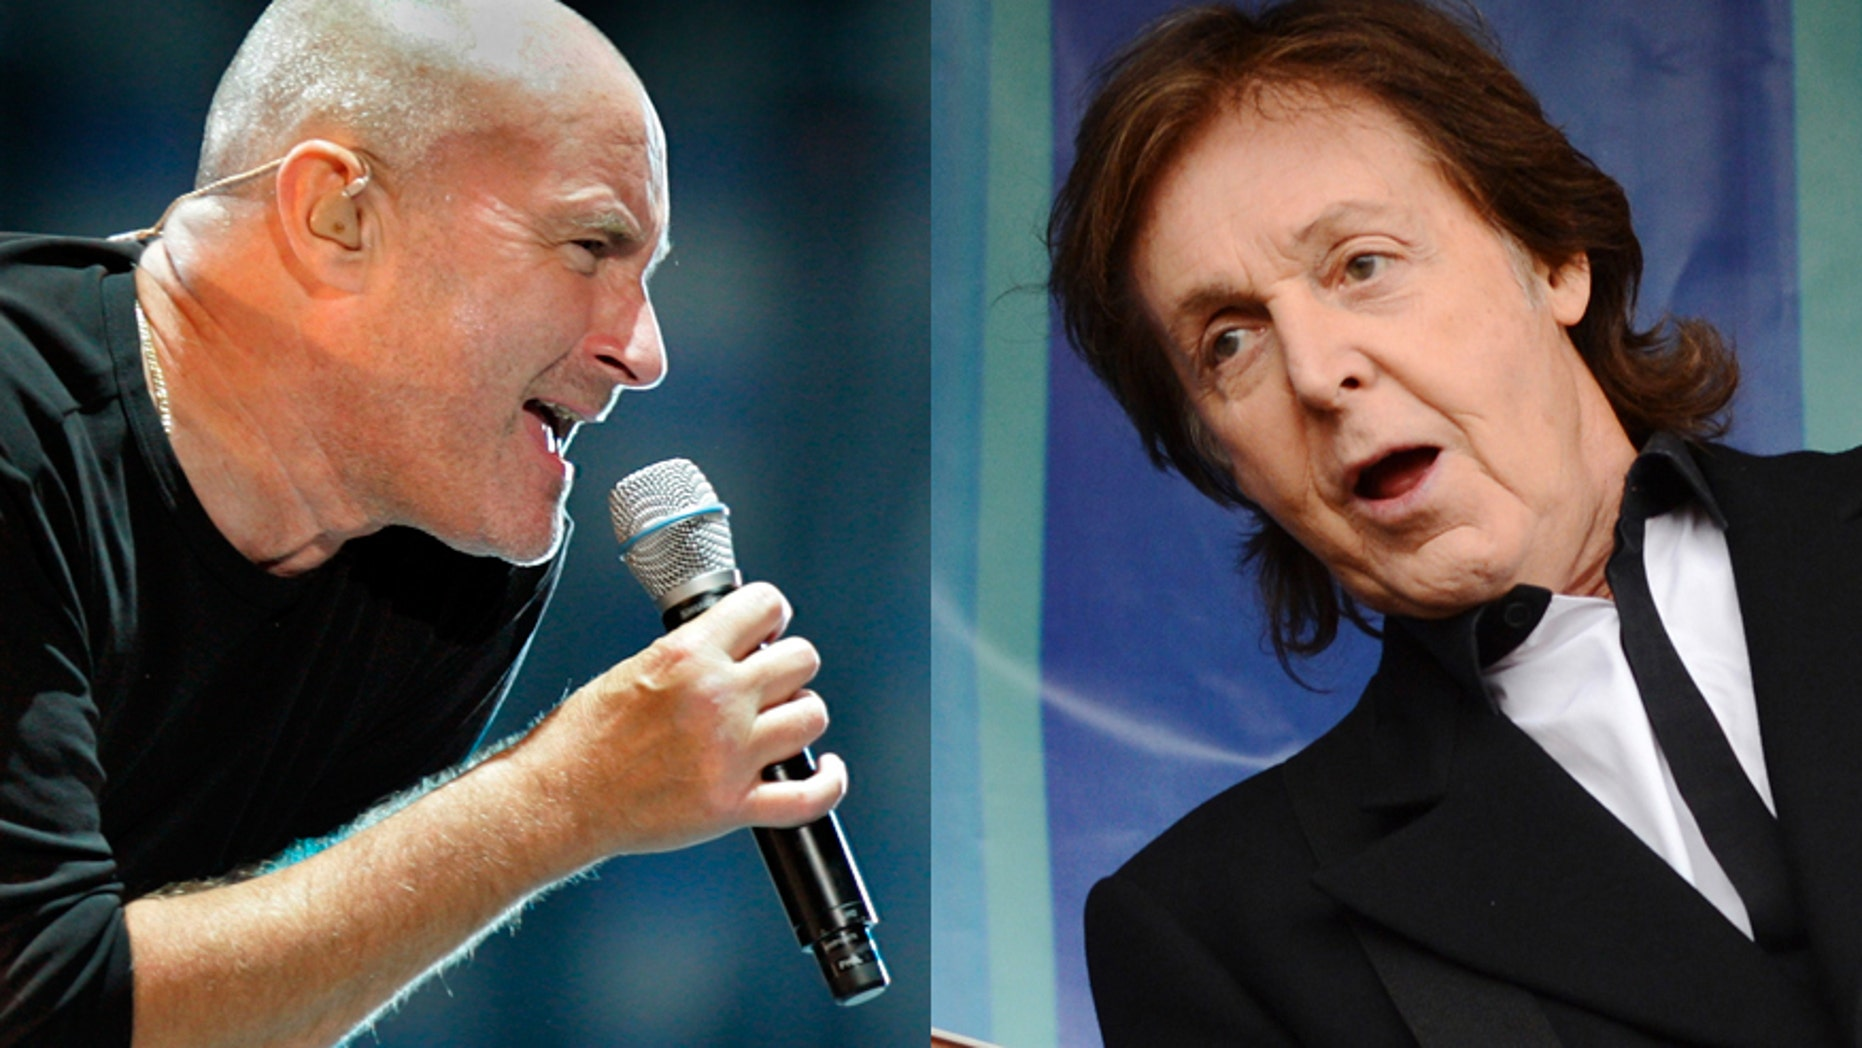 Phil Collins (left) and Paul McCartney.